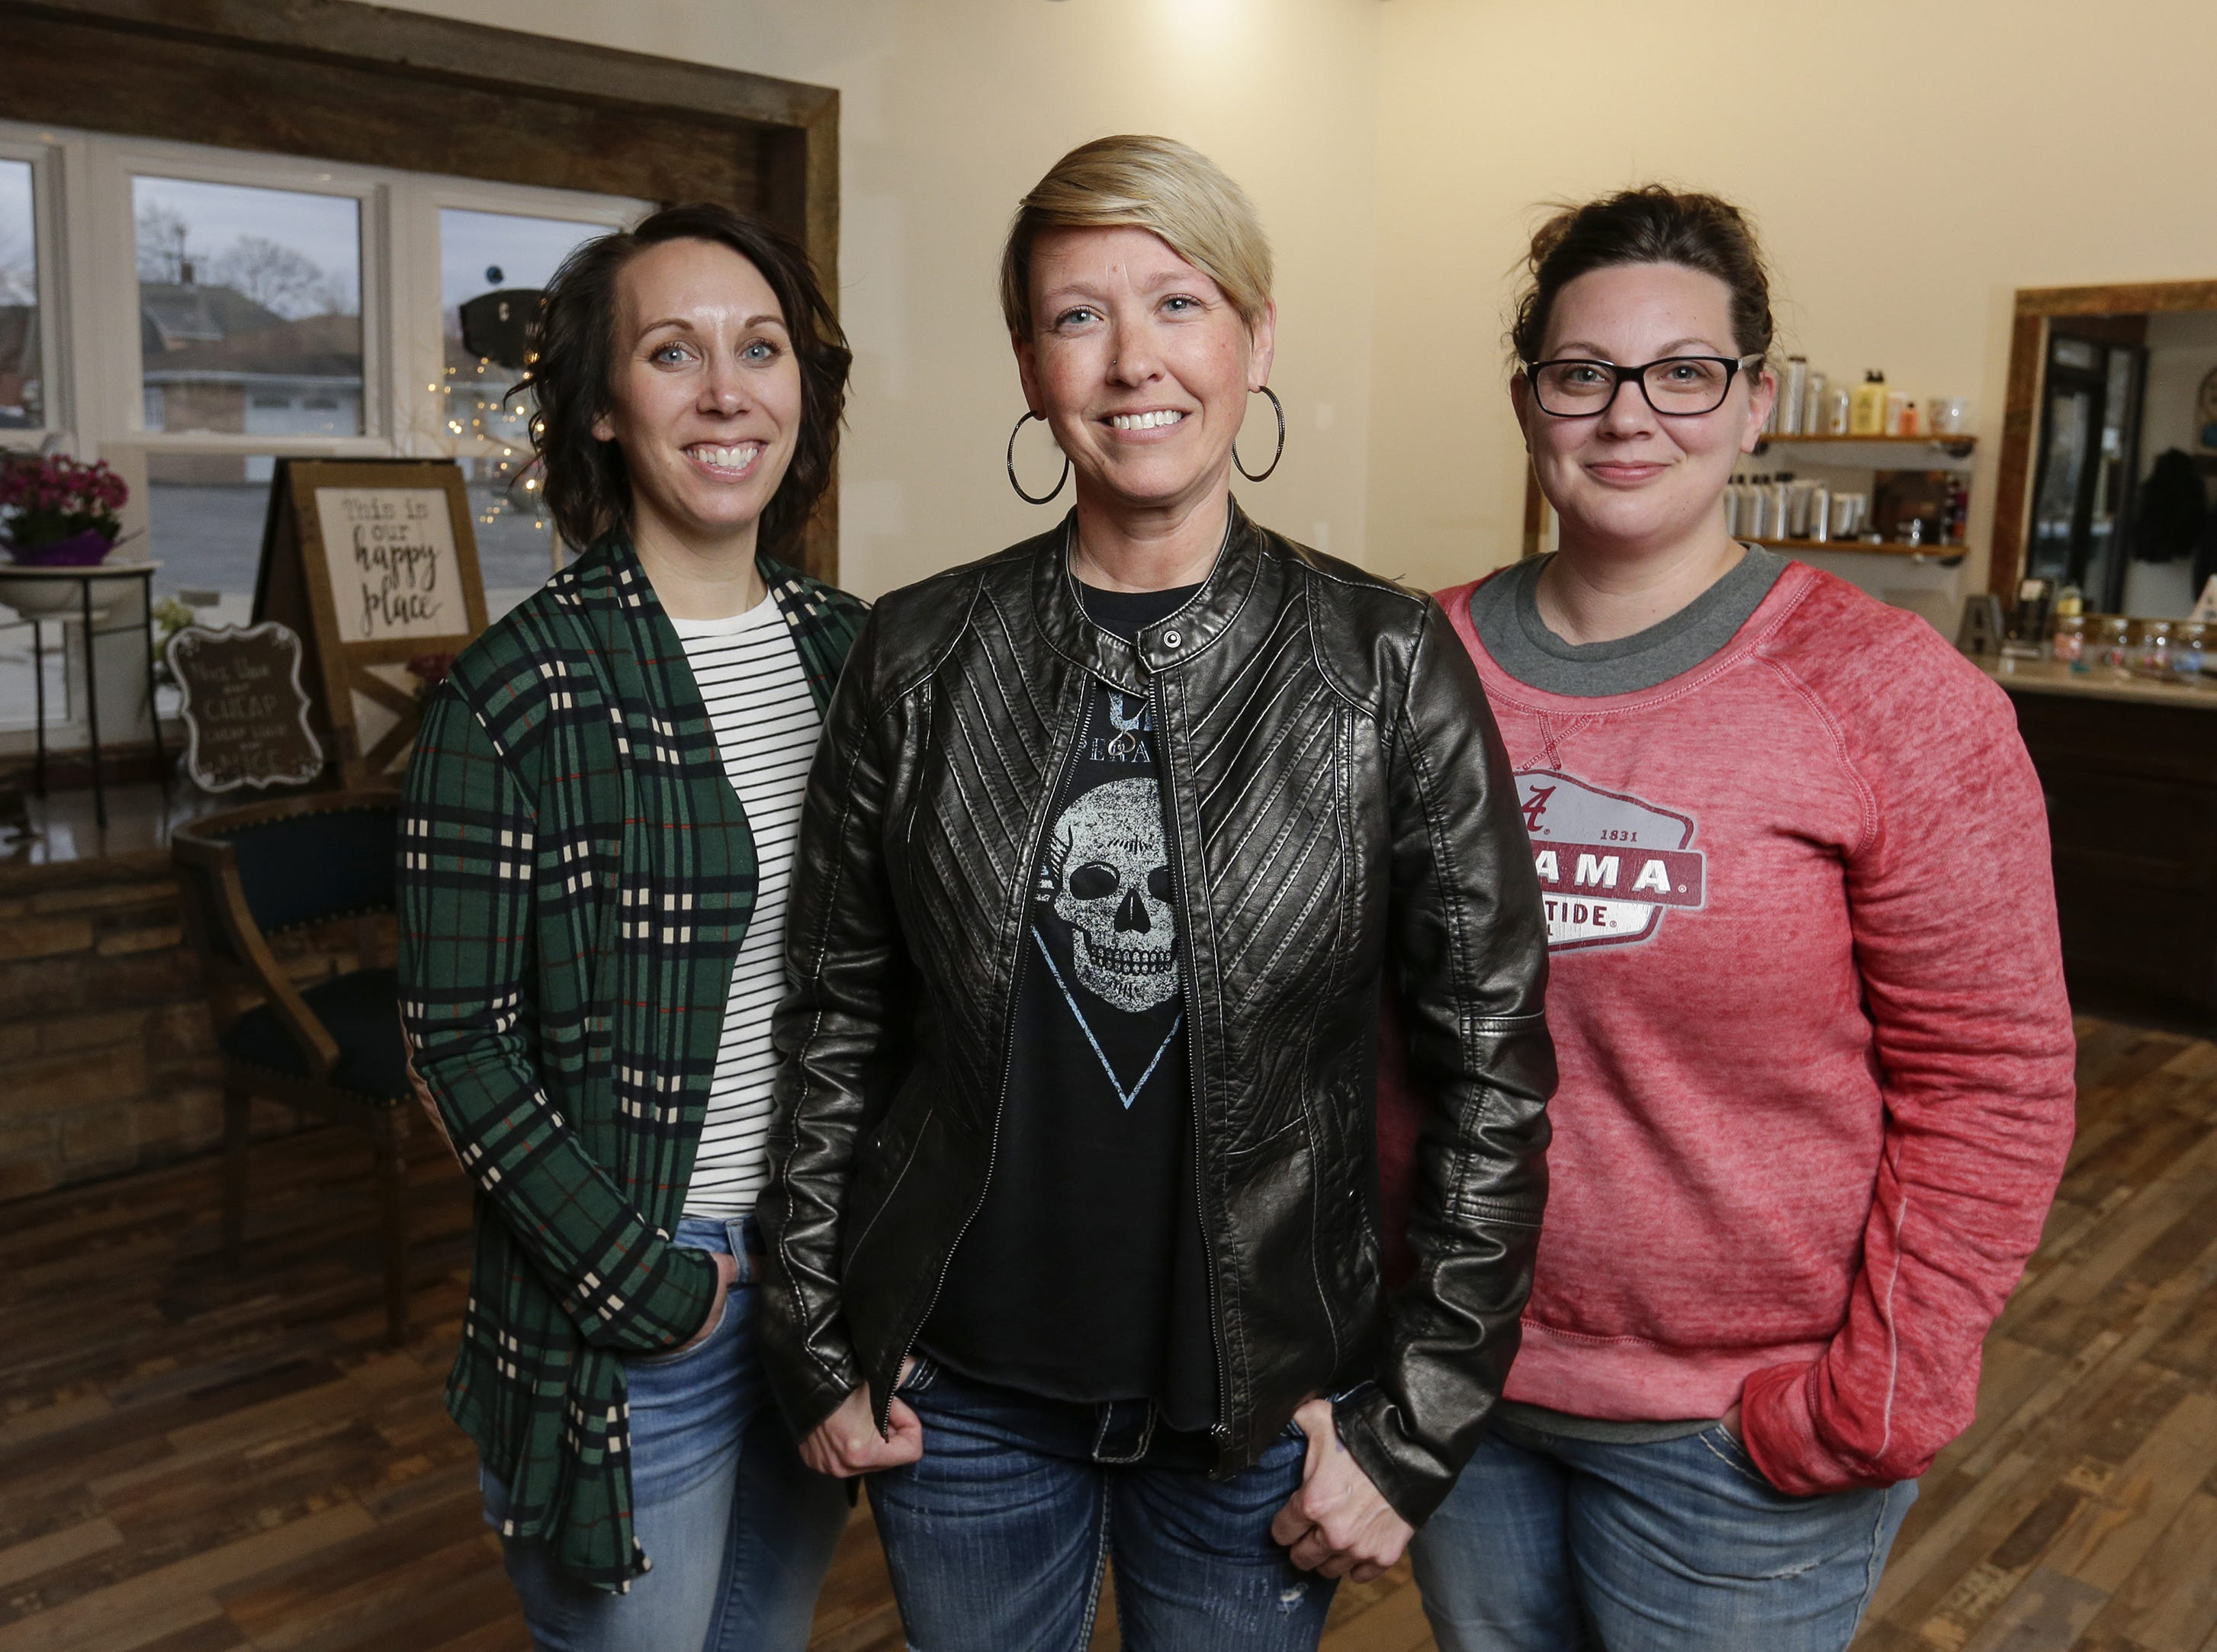 Kayla Fritsch (from left), Carrie Holton and Alicia Grimm, co-owners of the House of Bravo Salon, pose for a portrait in their recently opened business Monday, April 1, 2019, in Brillion, Wisconsin.